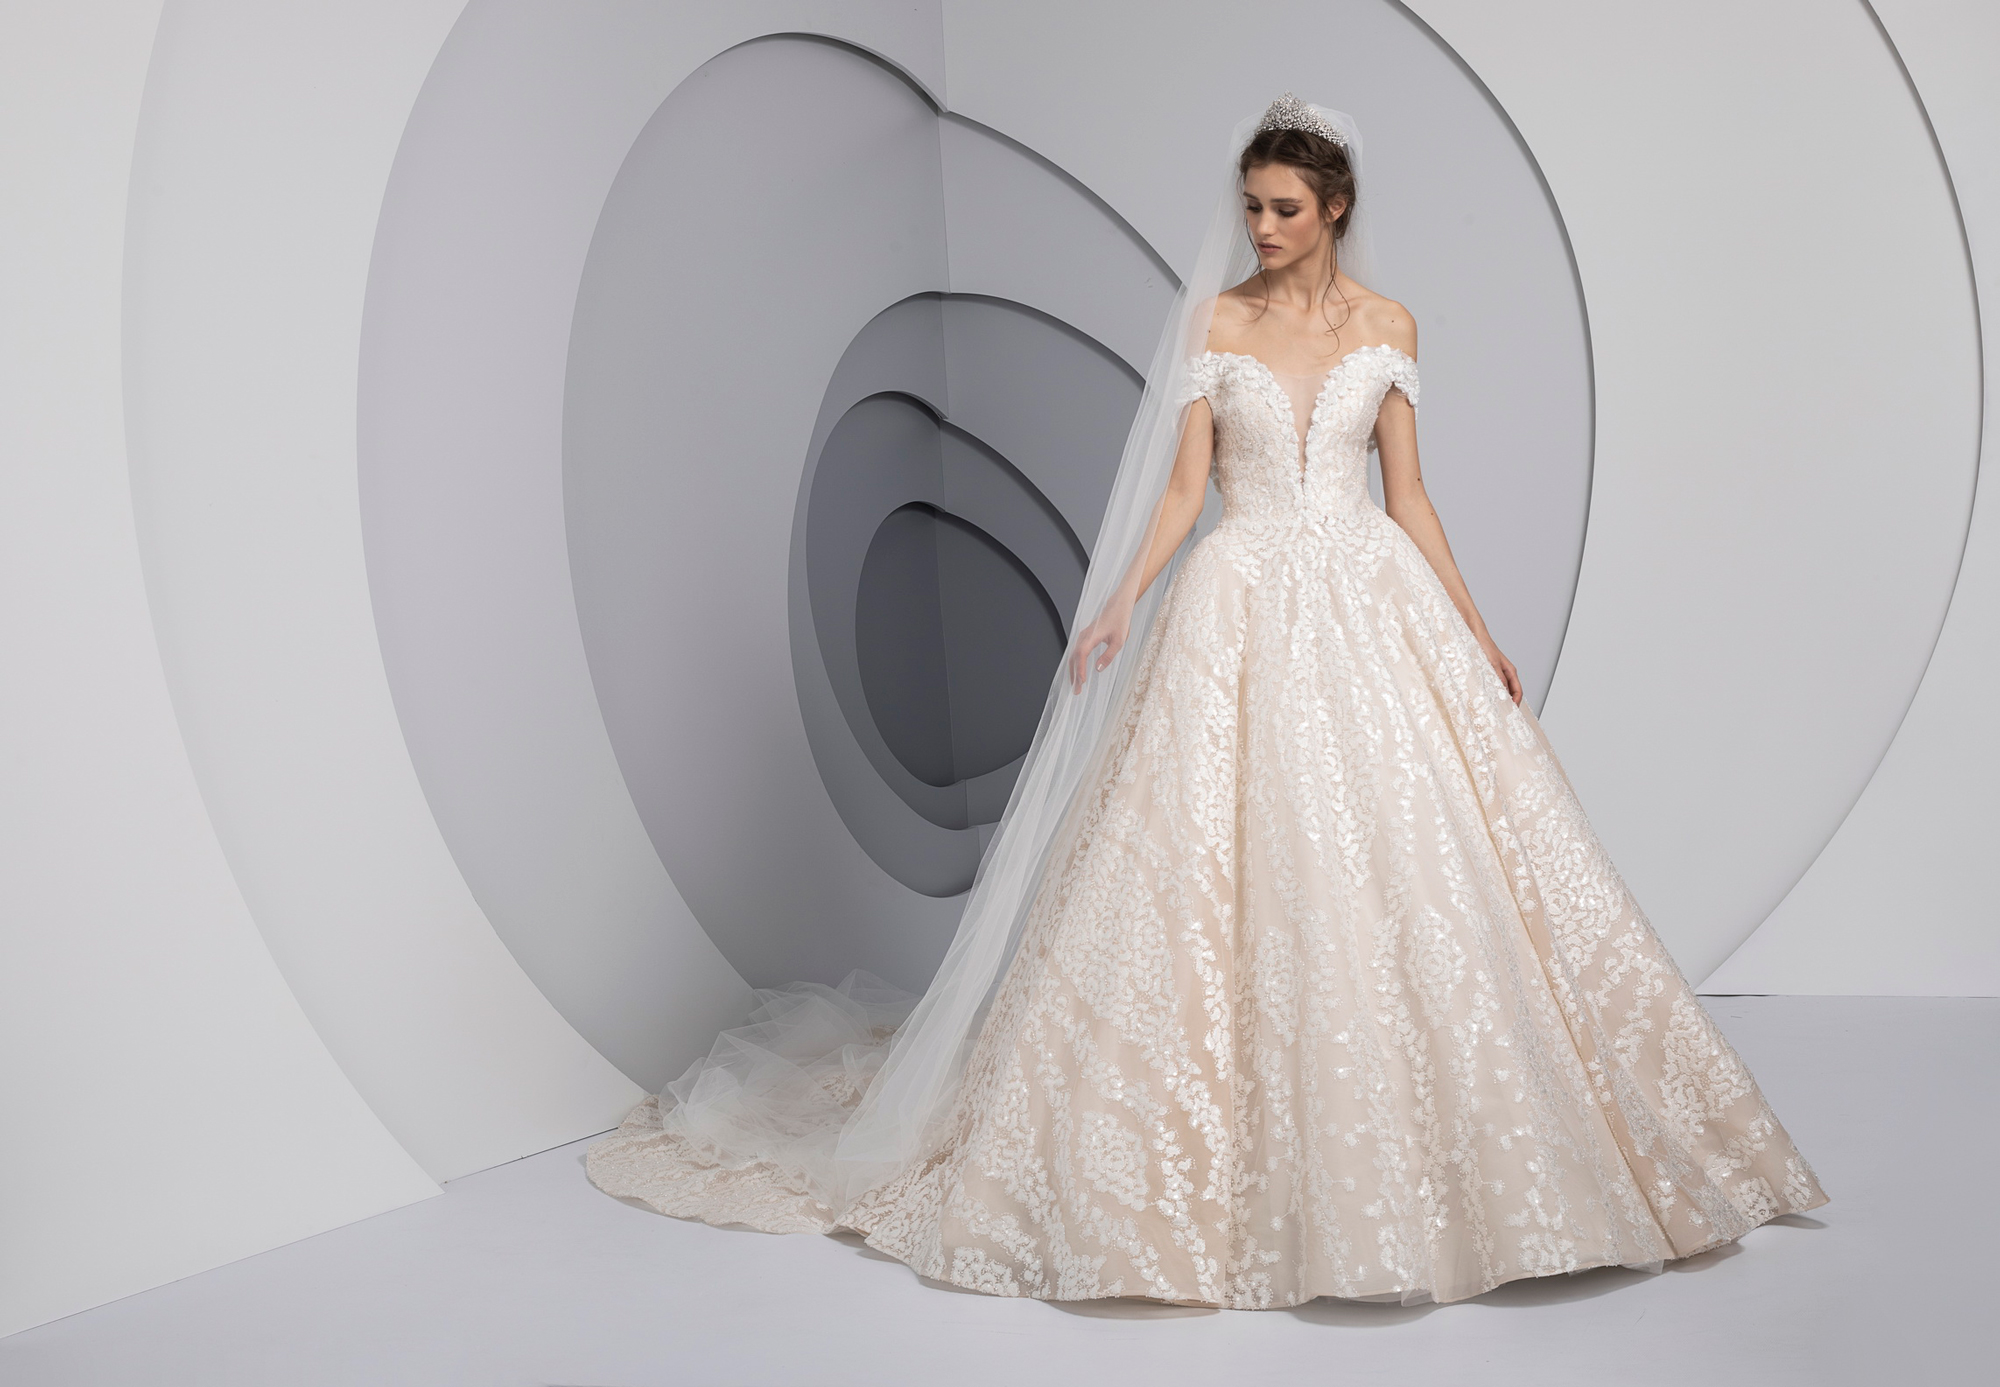 Twist by Tony Ward from the La Mariee Collection